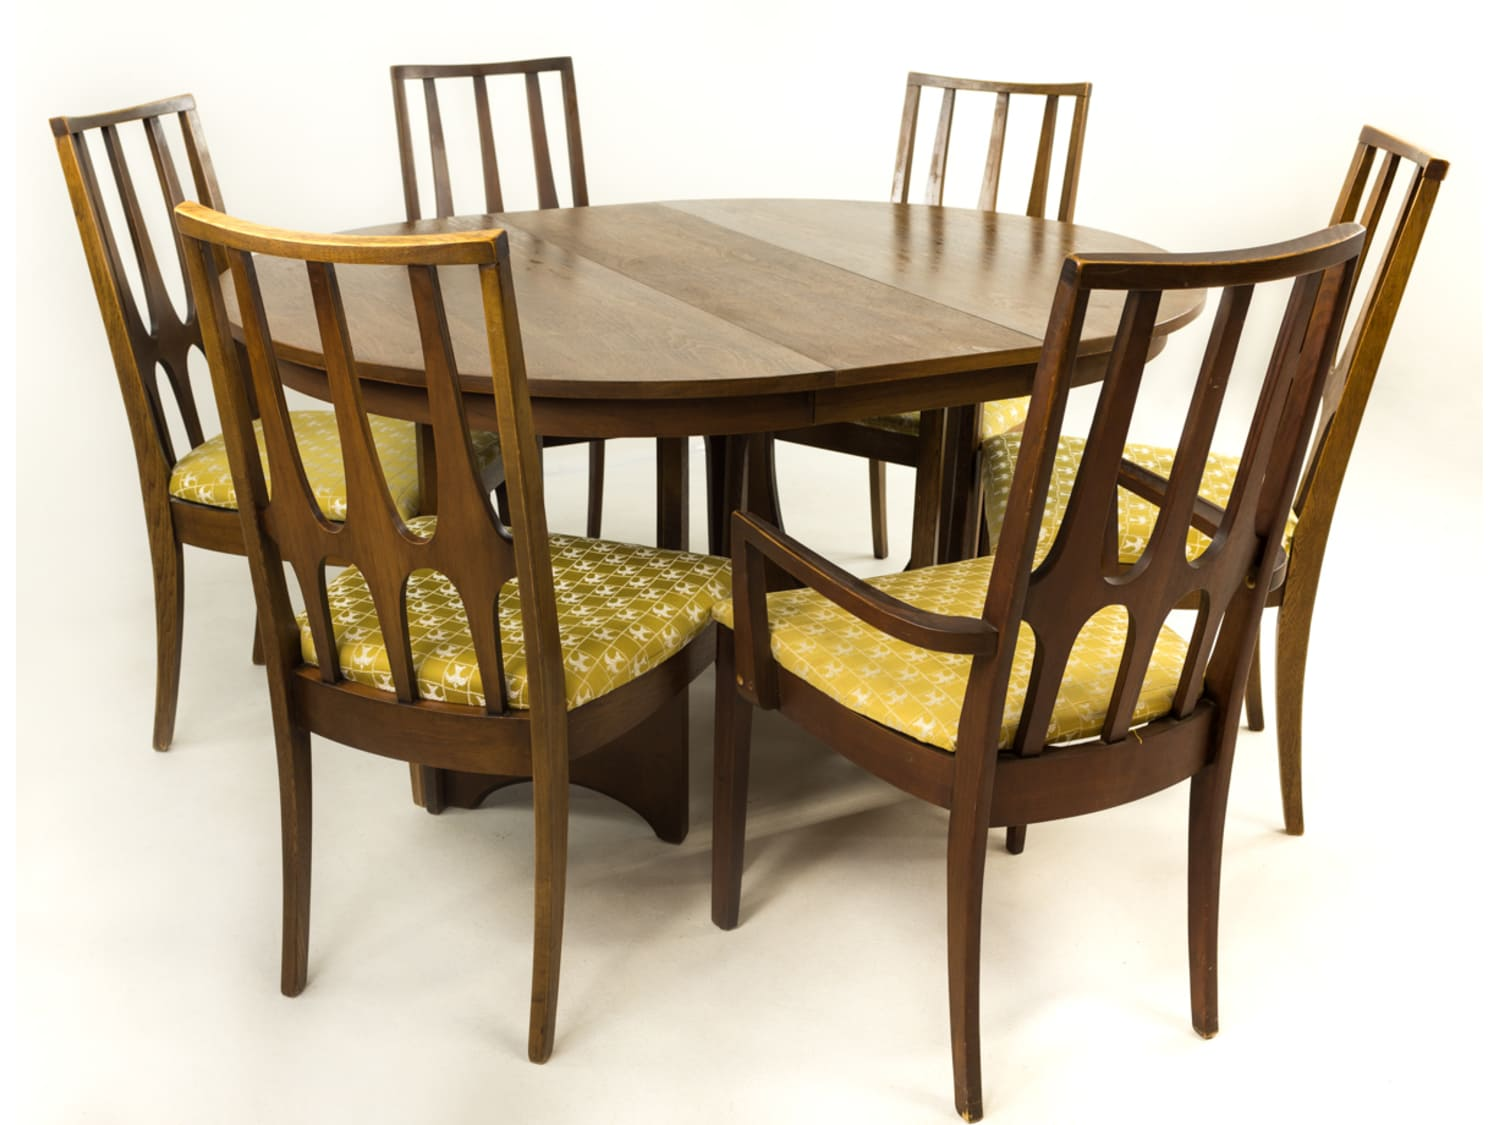 Broyhill Brasilia Round Dining Table Set 6 Chairs Apartment Therapy S Bazaar